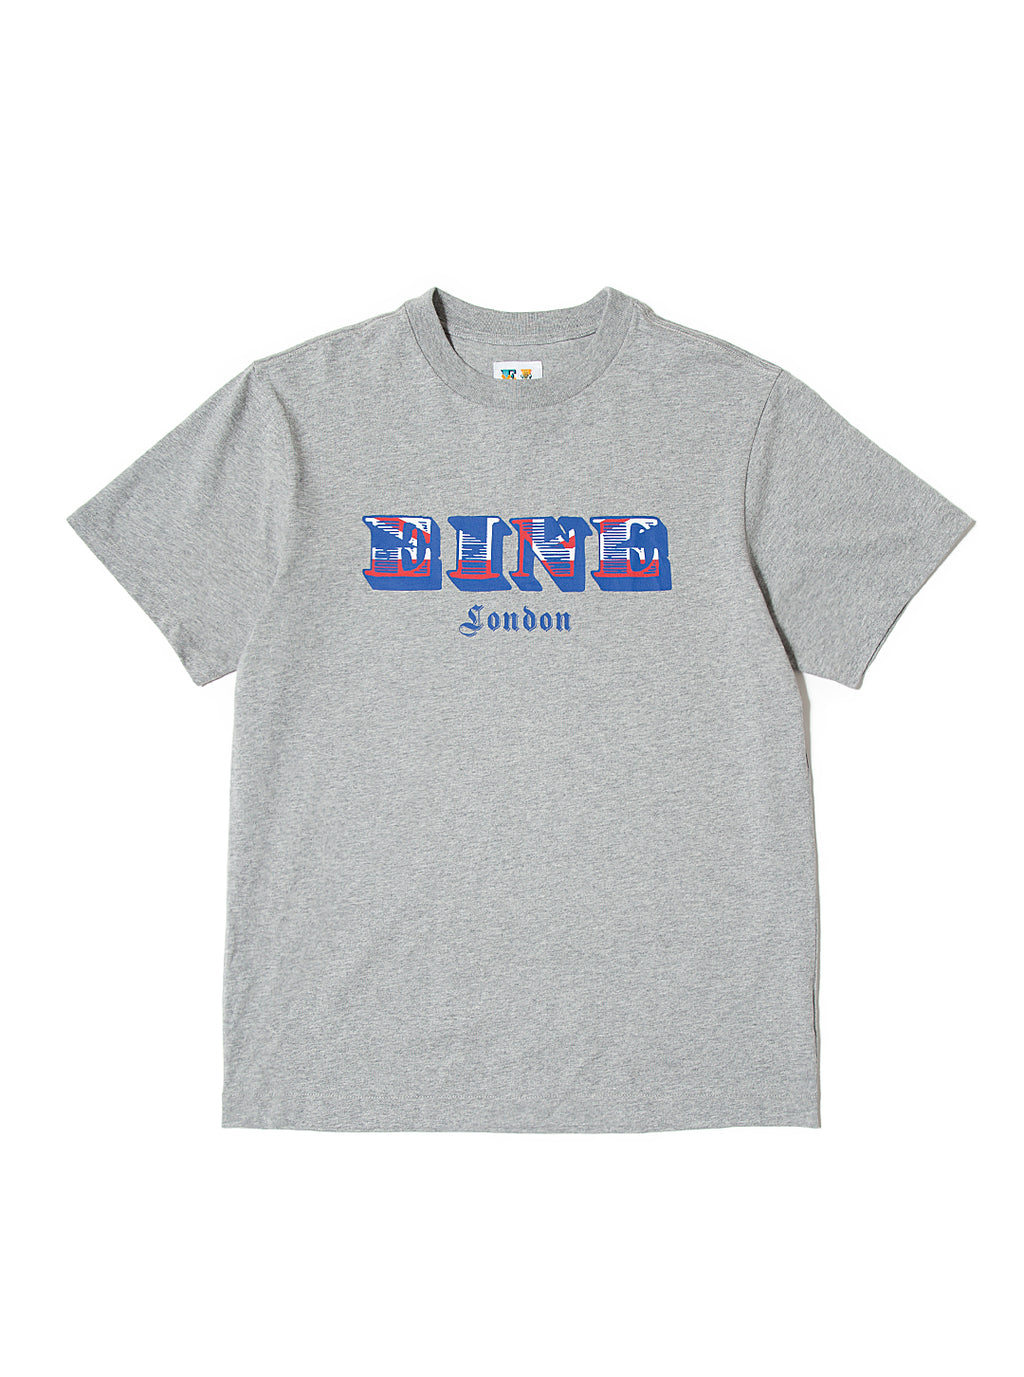 EINE British S/S T-Shirt - Grey Marl Sample